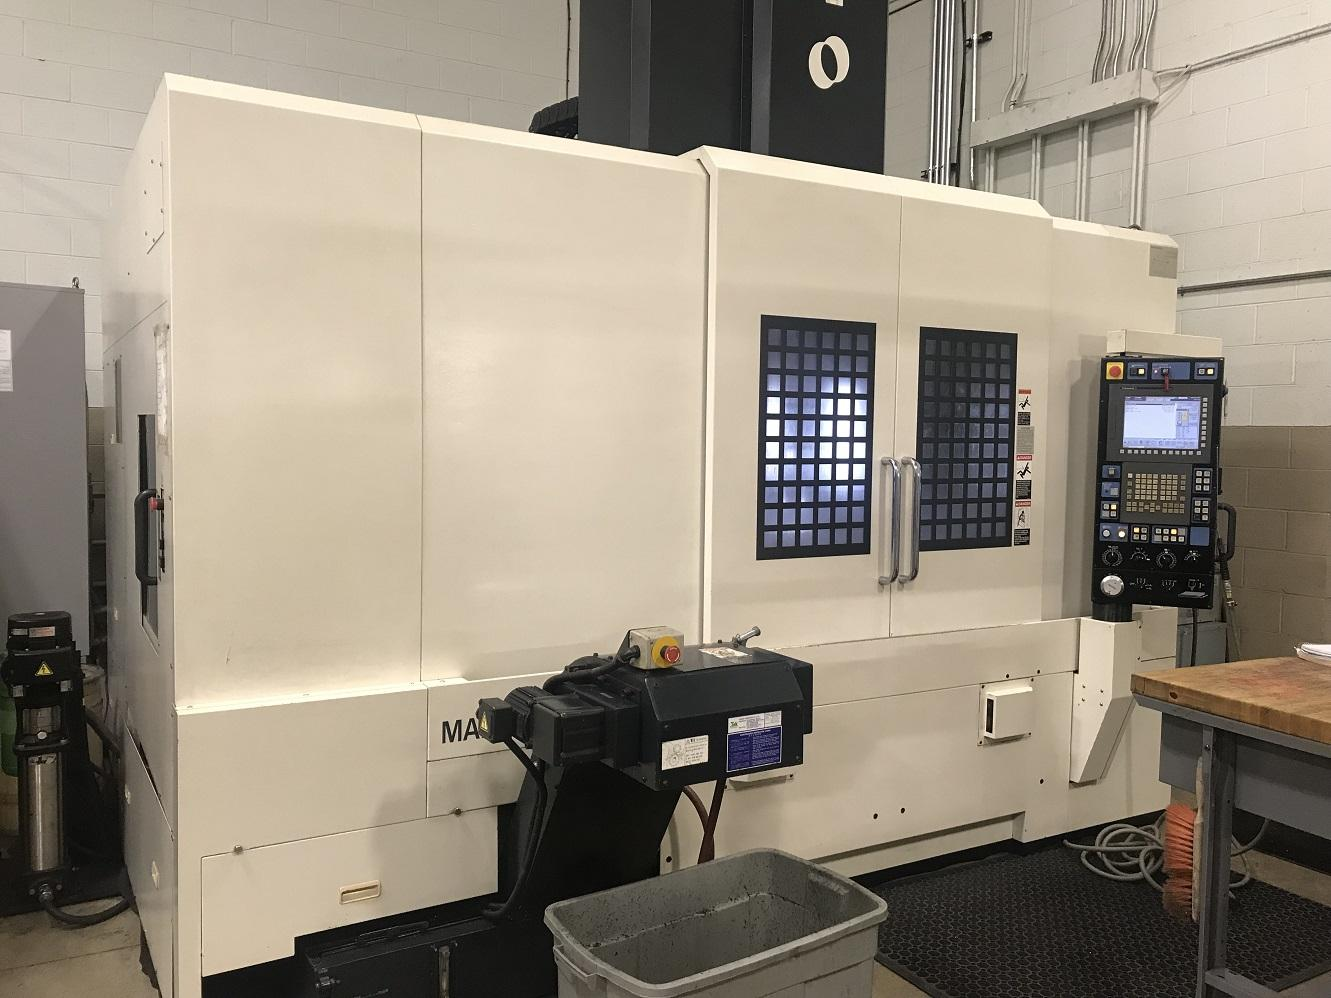 "Makino V77, Fanuc Pro 5, CTS,SGI 4, 47""/27""/25"", 20k RPM, Scales, HSK63, Data Server, Probing, ATLM, 30 ATC, 5500 lb Cap., New Spindle 2015, C/C, 2006"